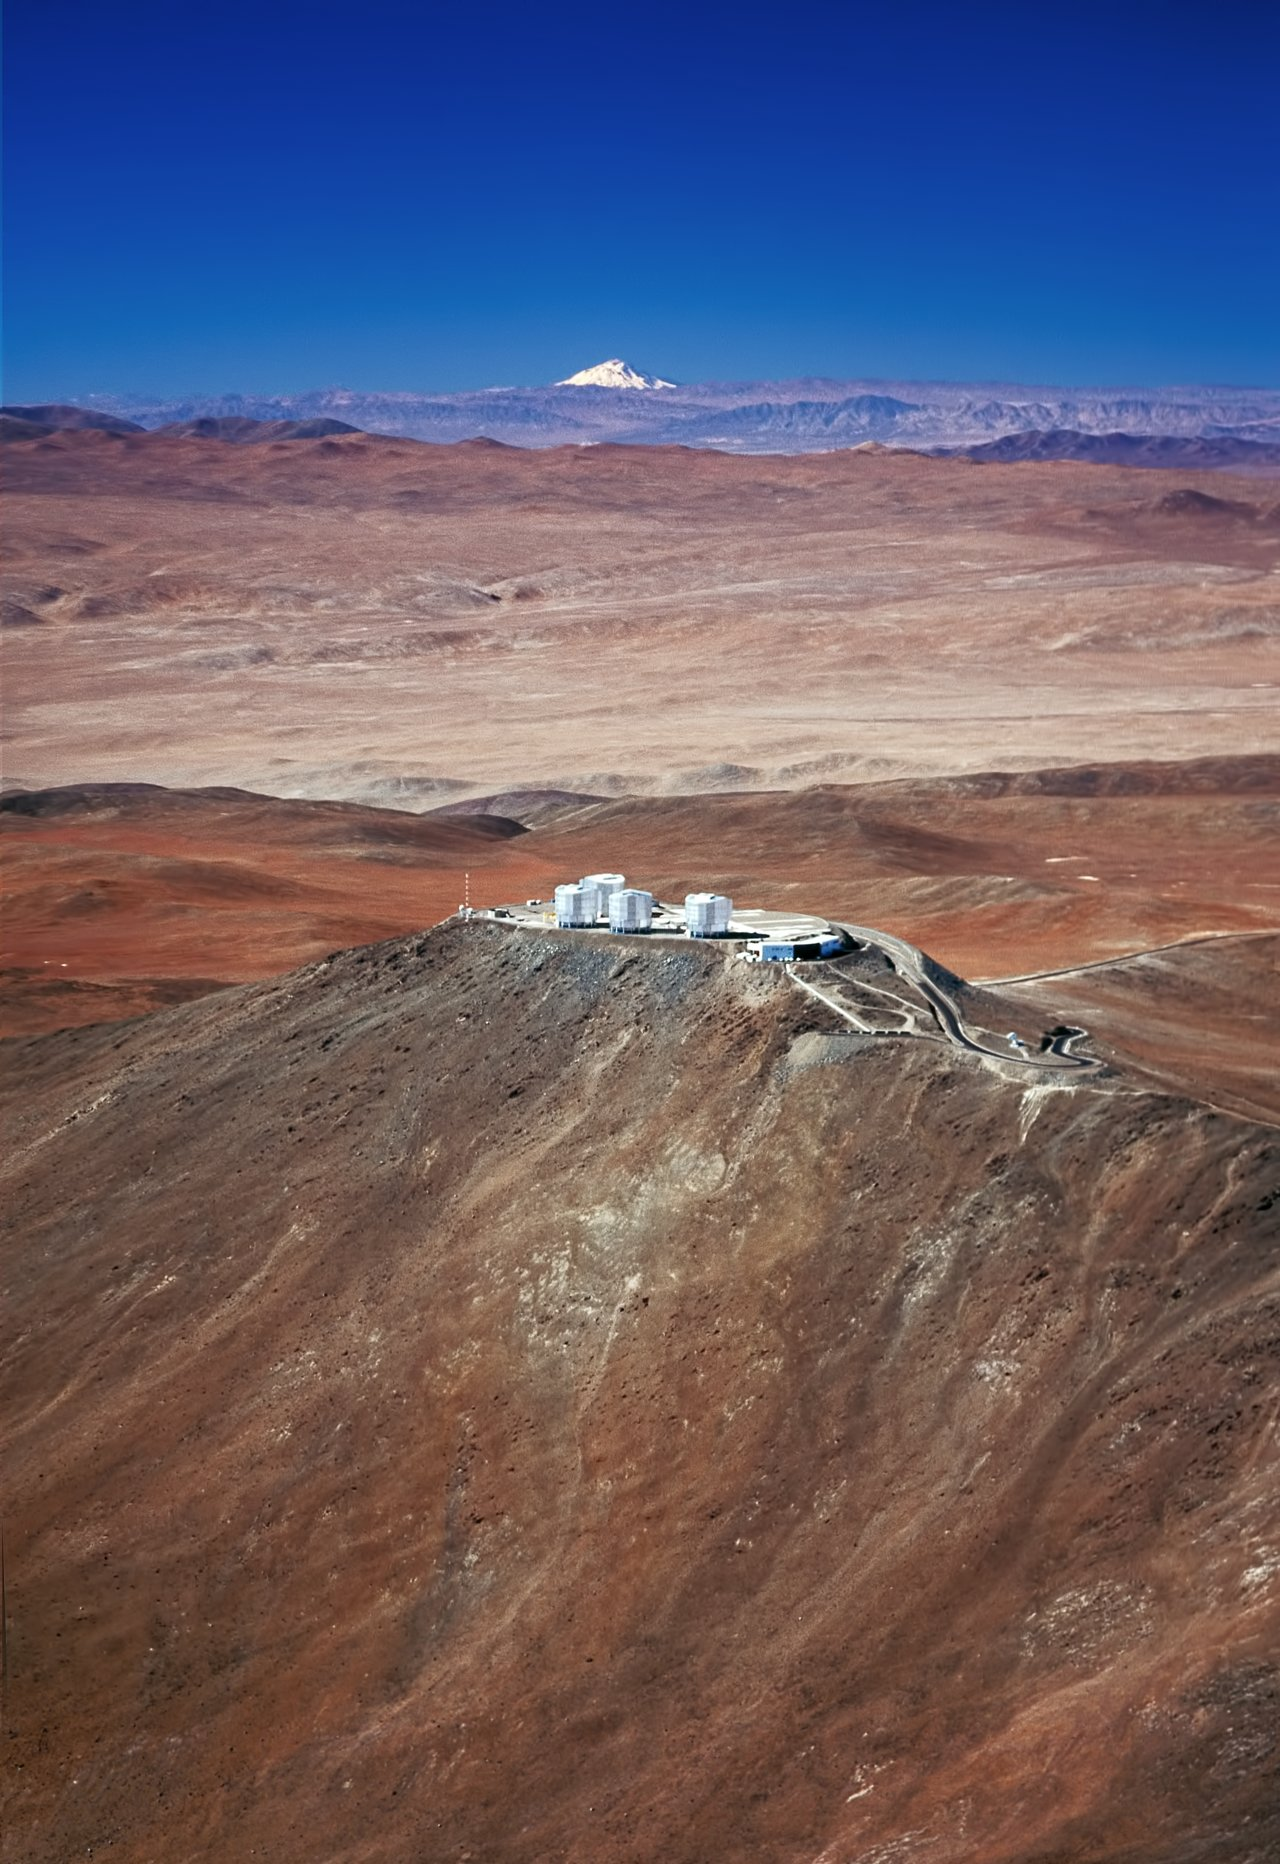 Mounted image 013: Paranal Observatory and the volcano Llullaillaco